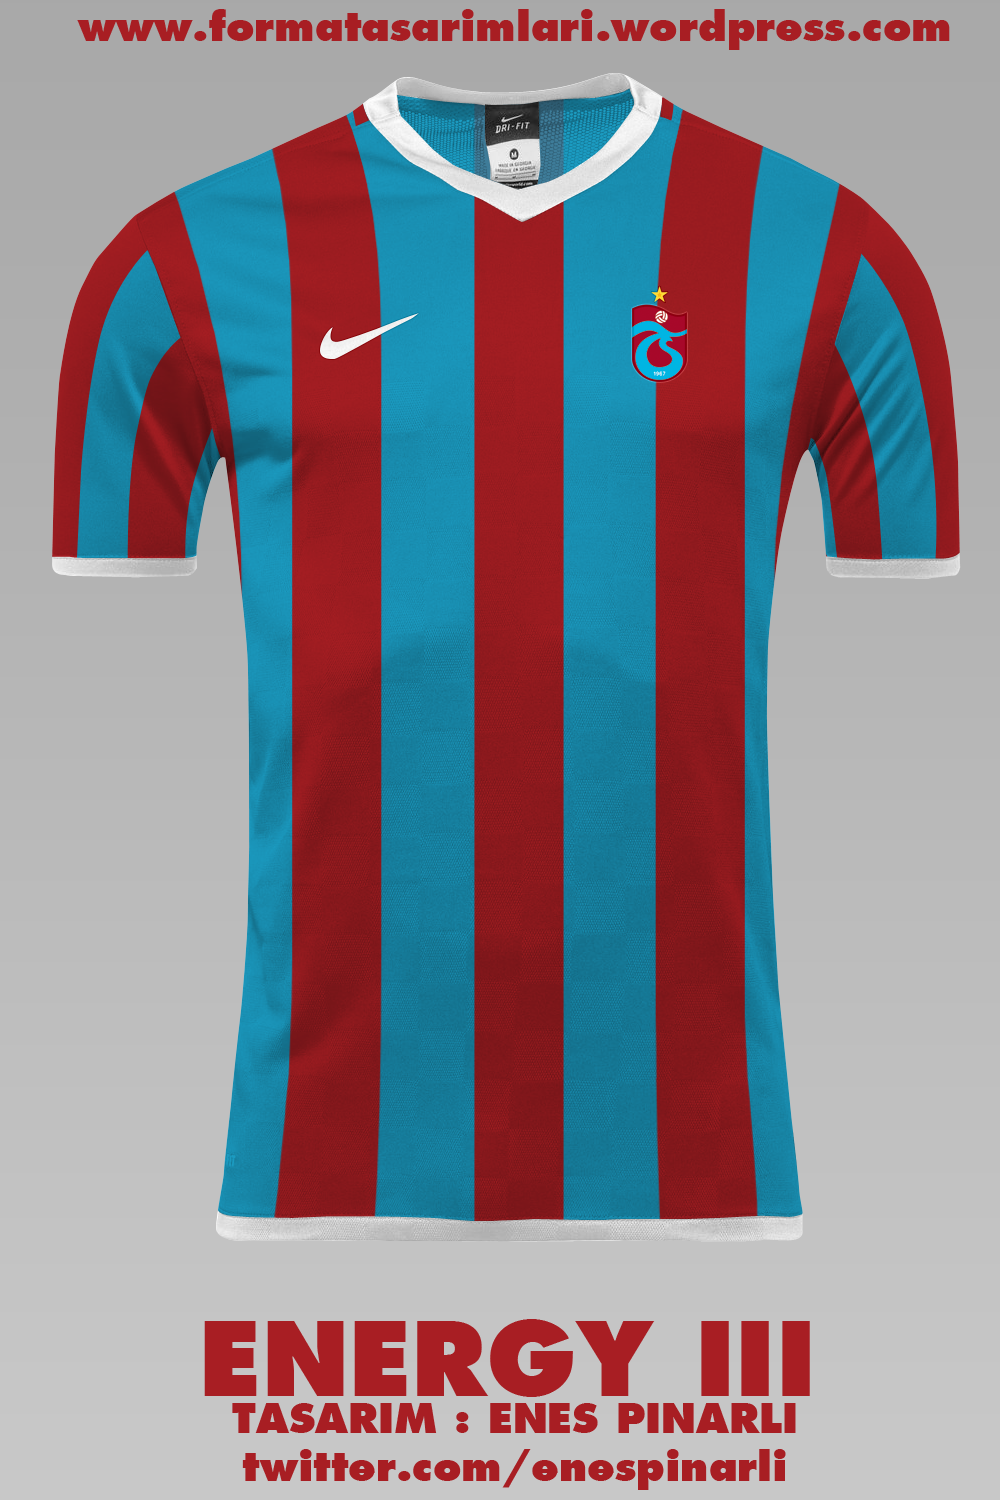 https://formatasarimlari.files.wordpress.com/2016/06/trabzonspor-16-1-copy1.png